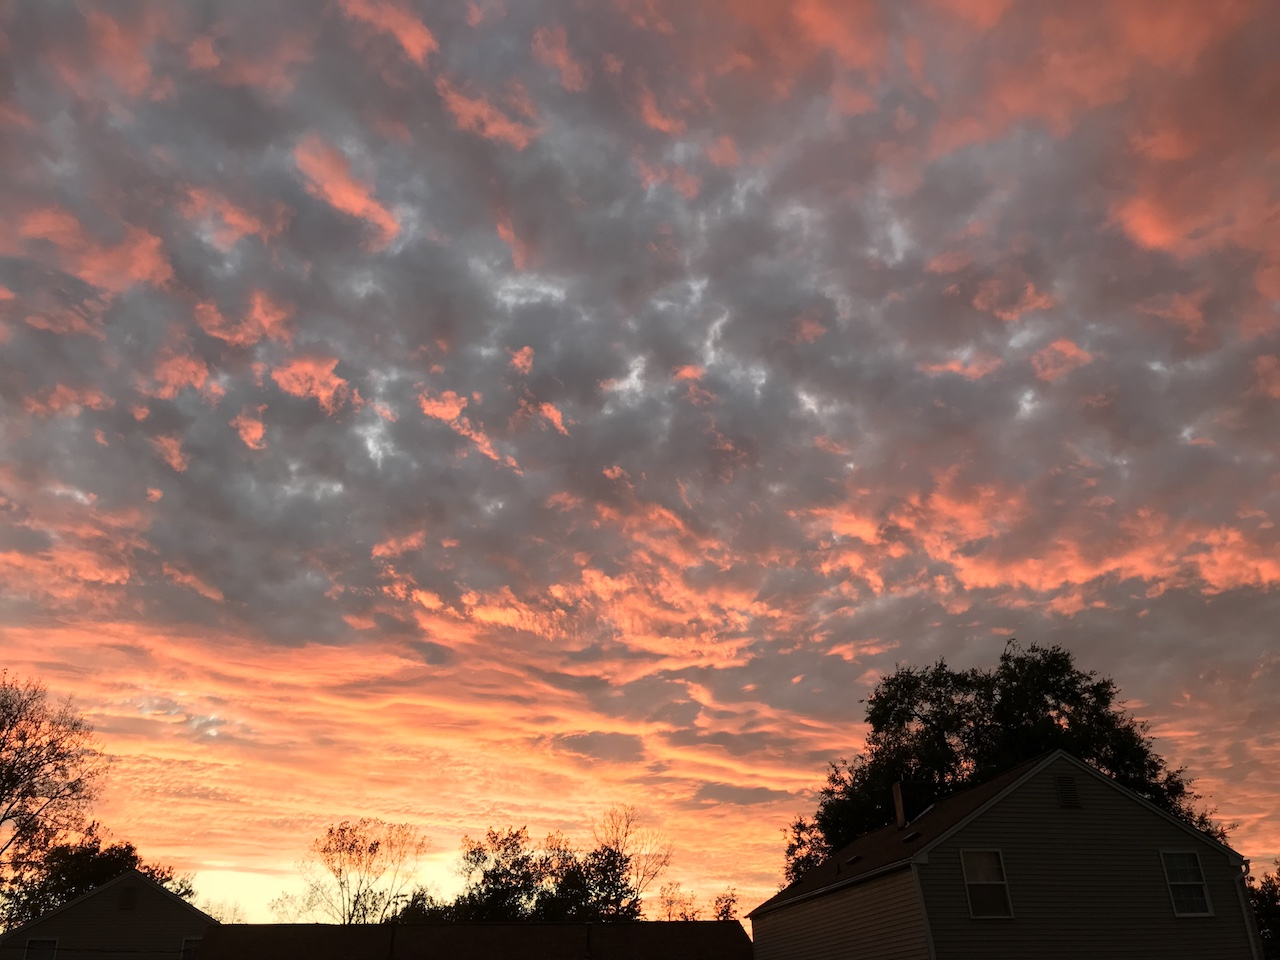 Spectacular sunset over the weekend (photo)